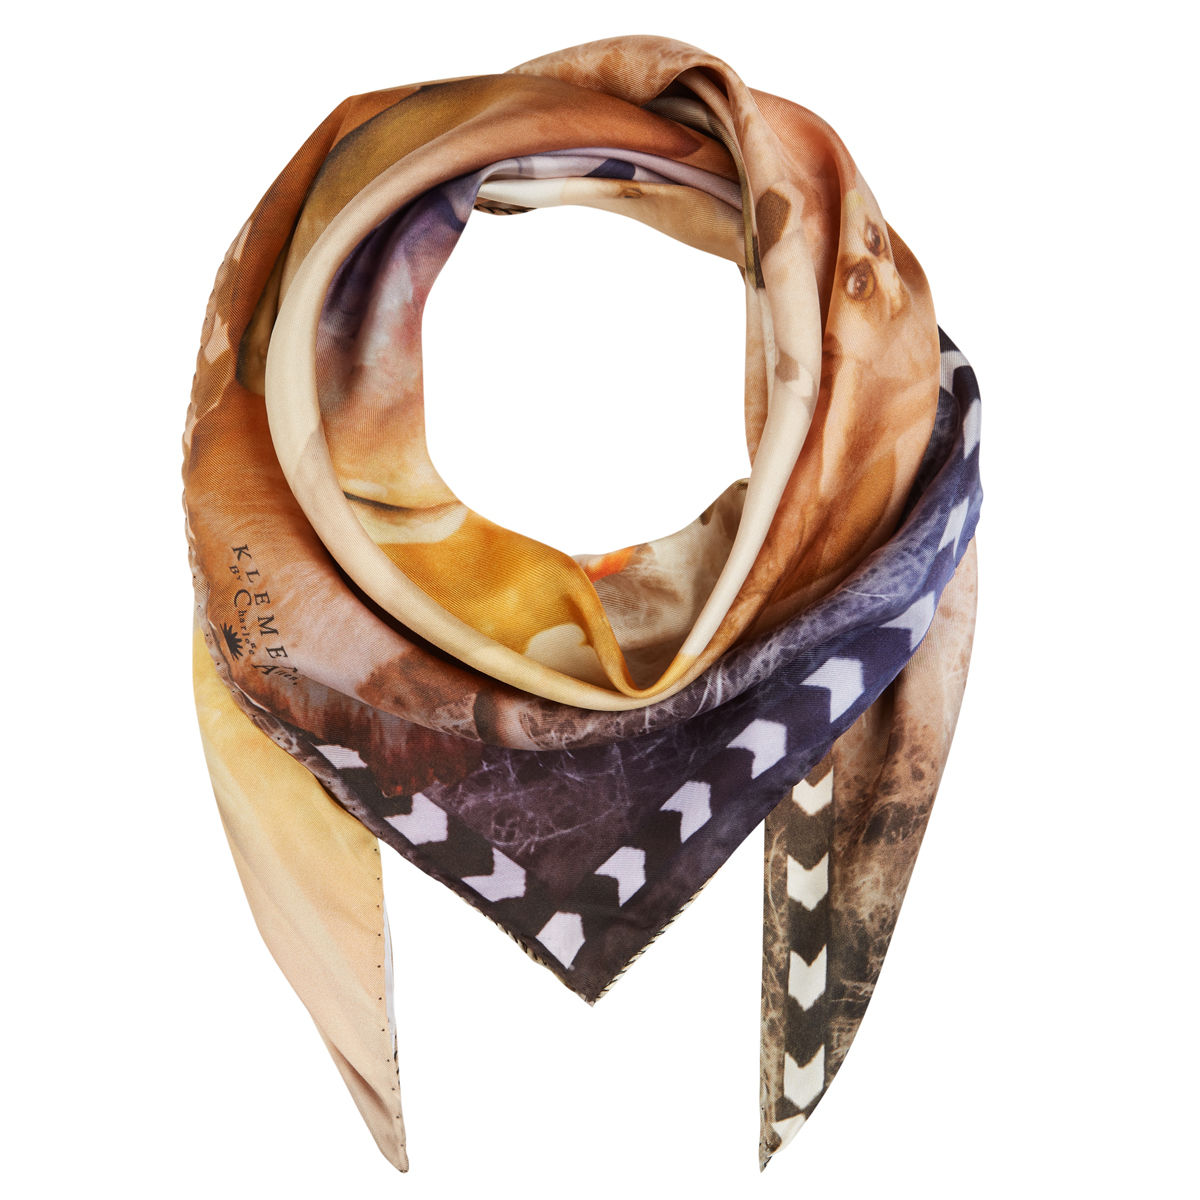 Medium scarf in Narnia print - product images  of